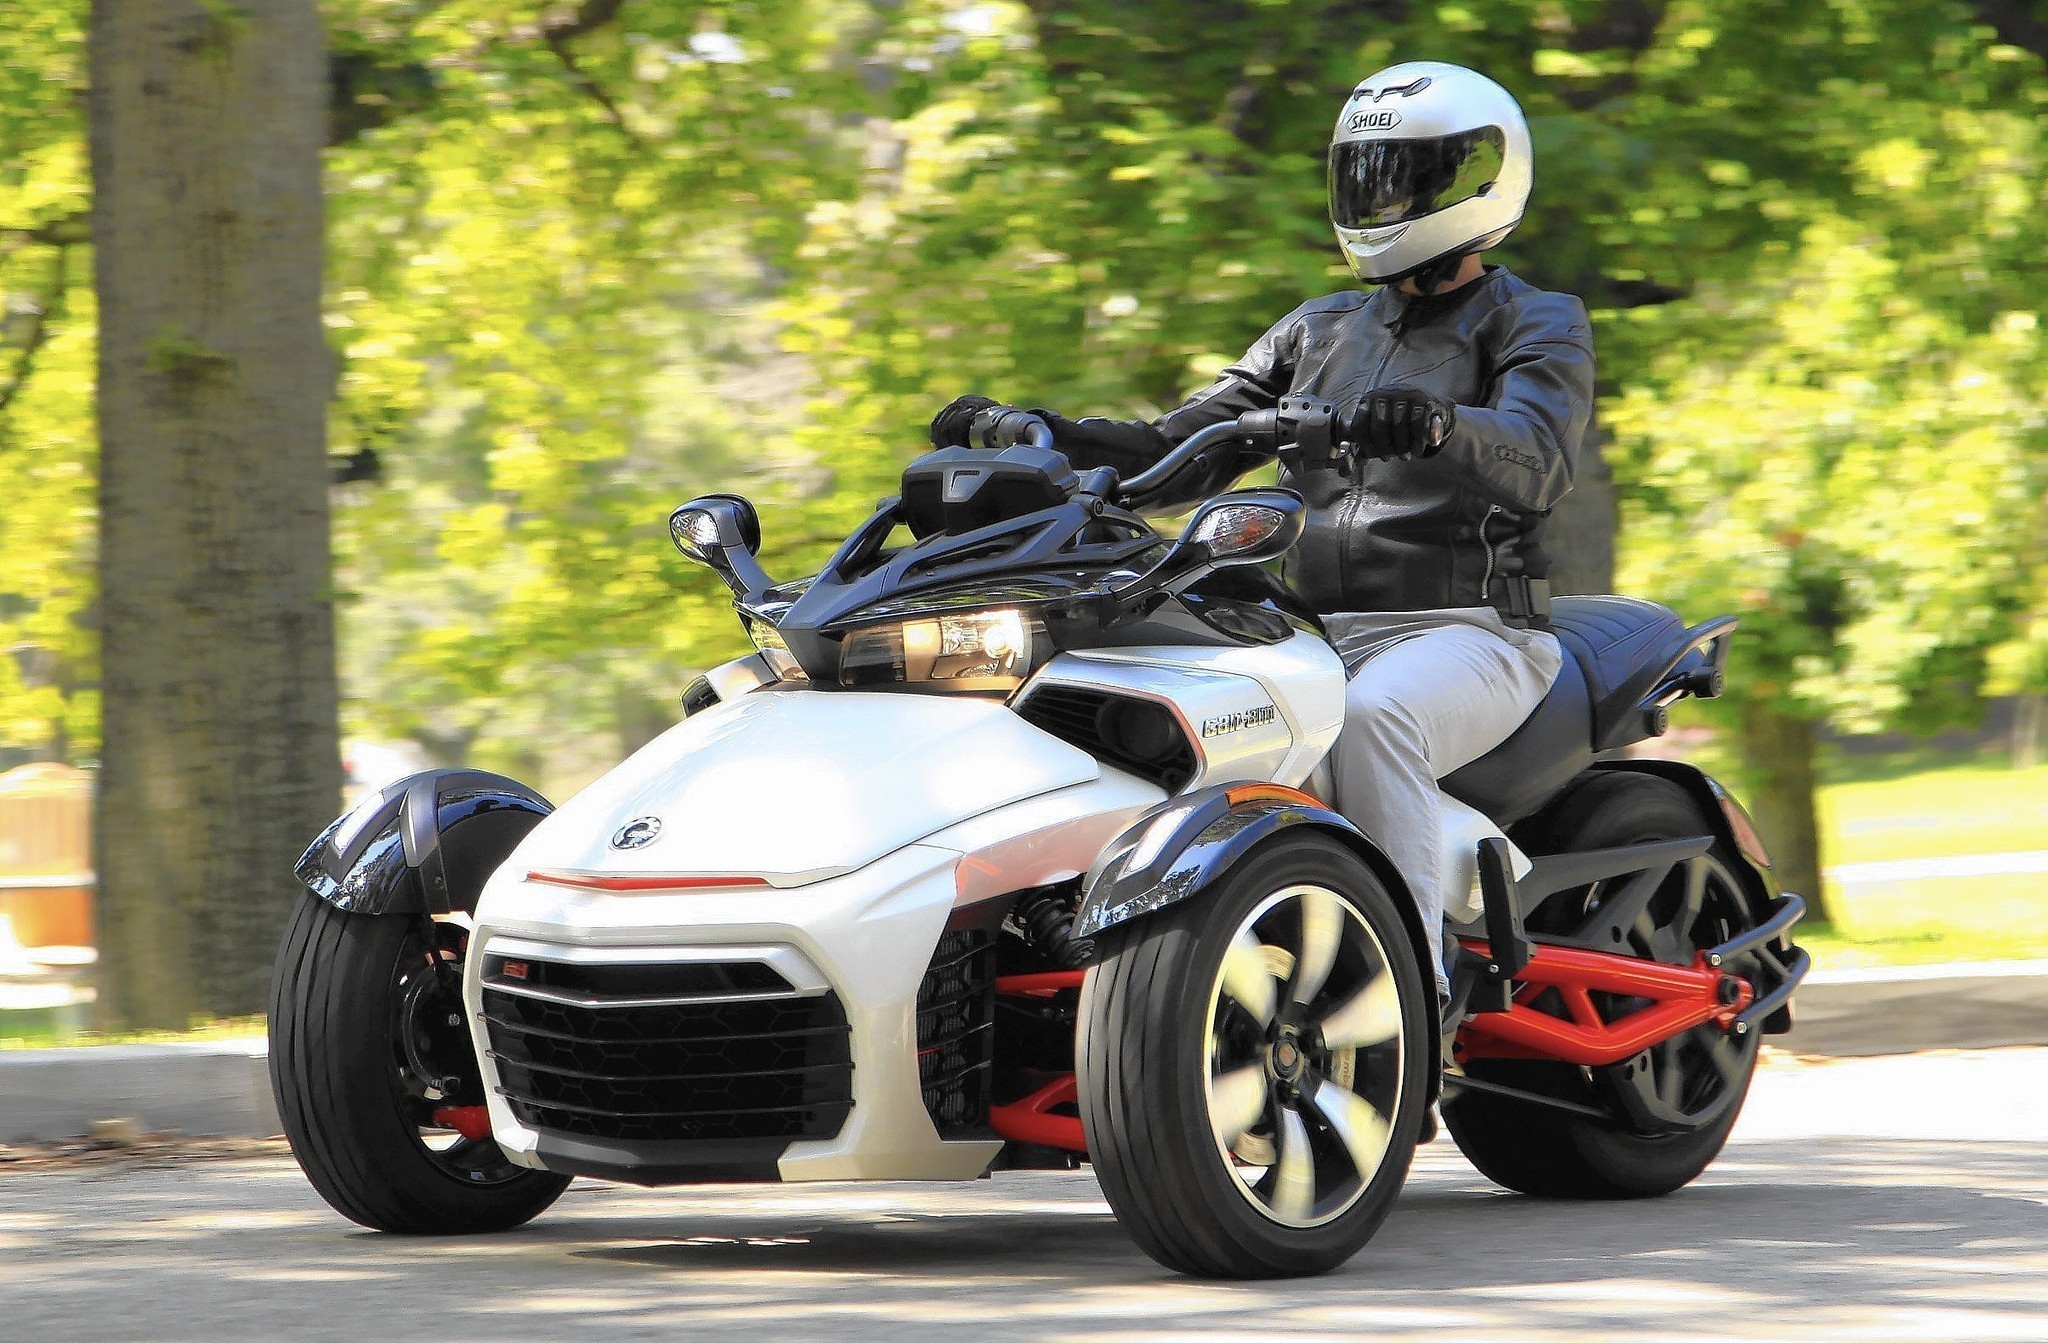 Can am spyder review newbies may dig it serious bikers not so much la times